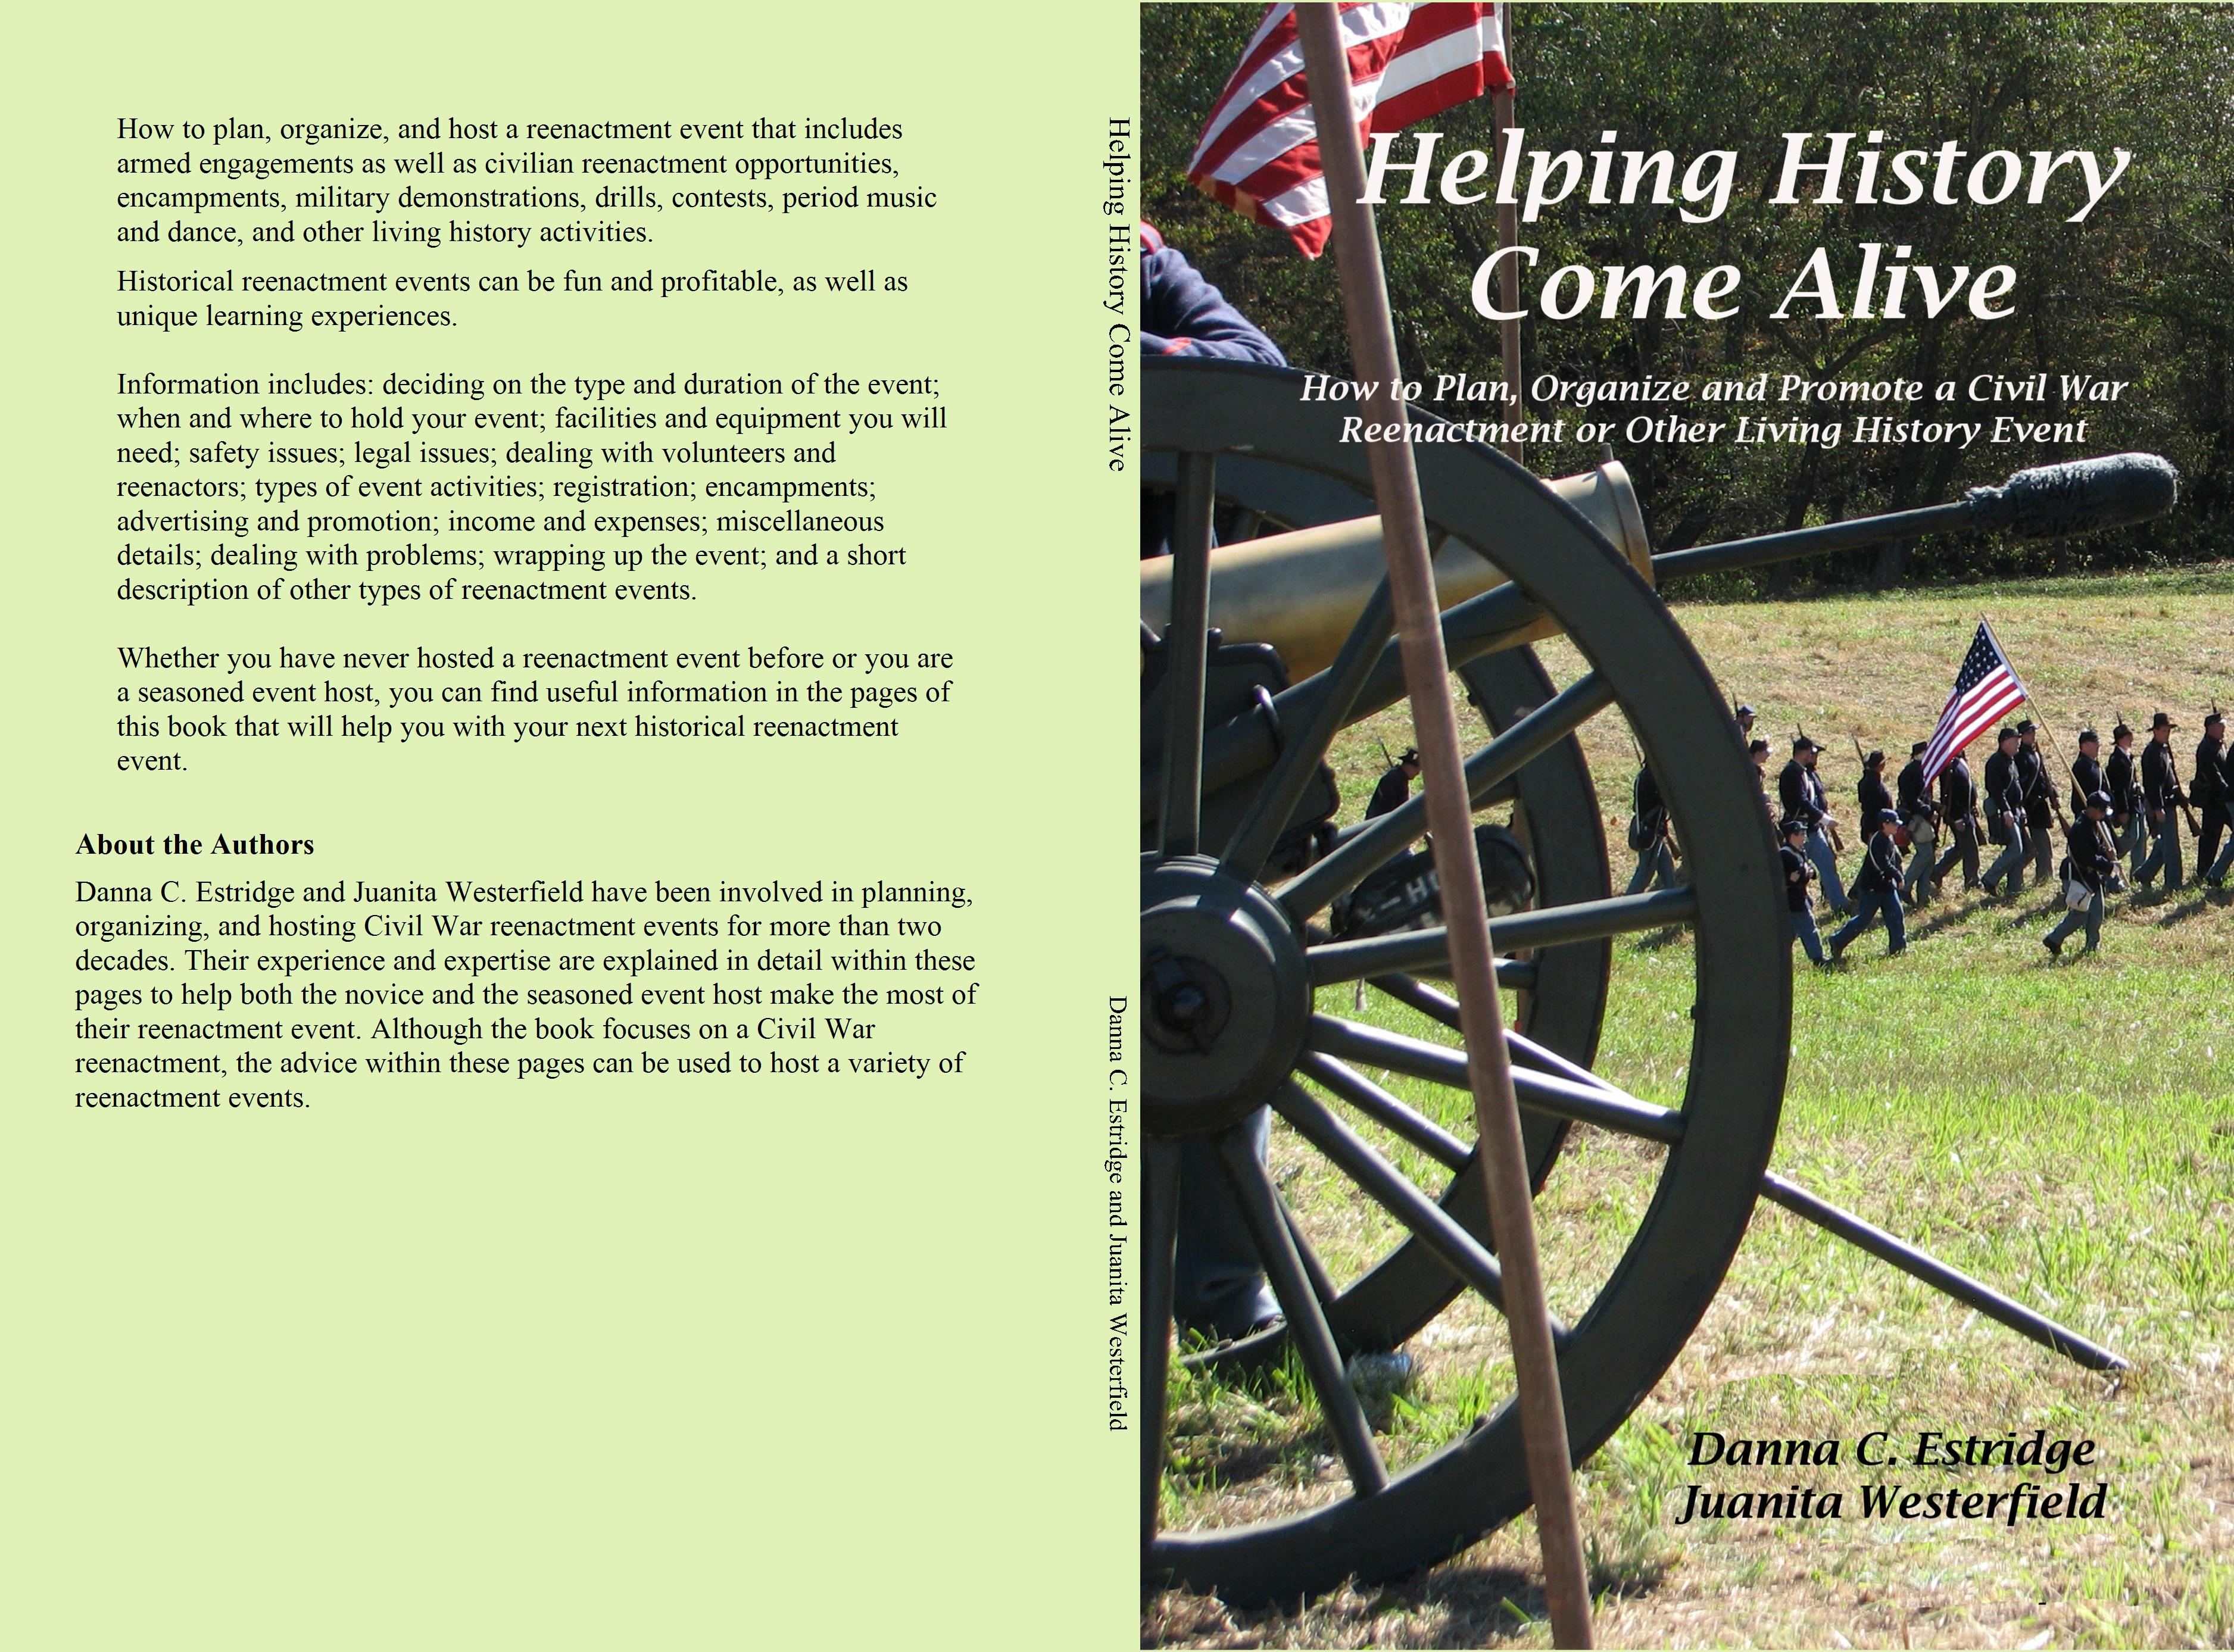 Helping History Come Alive cover image